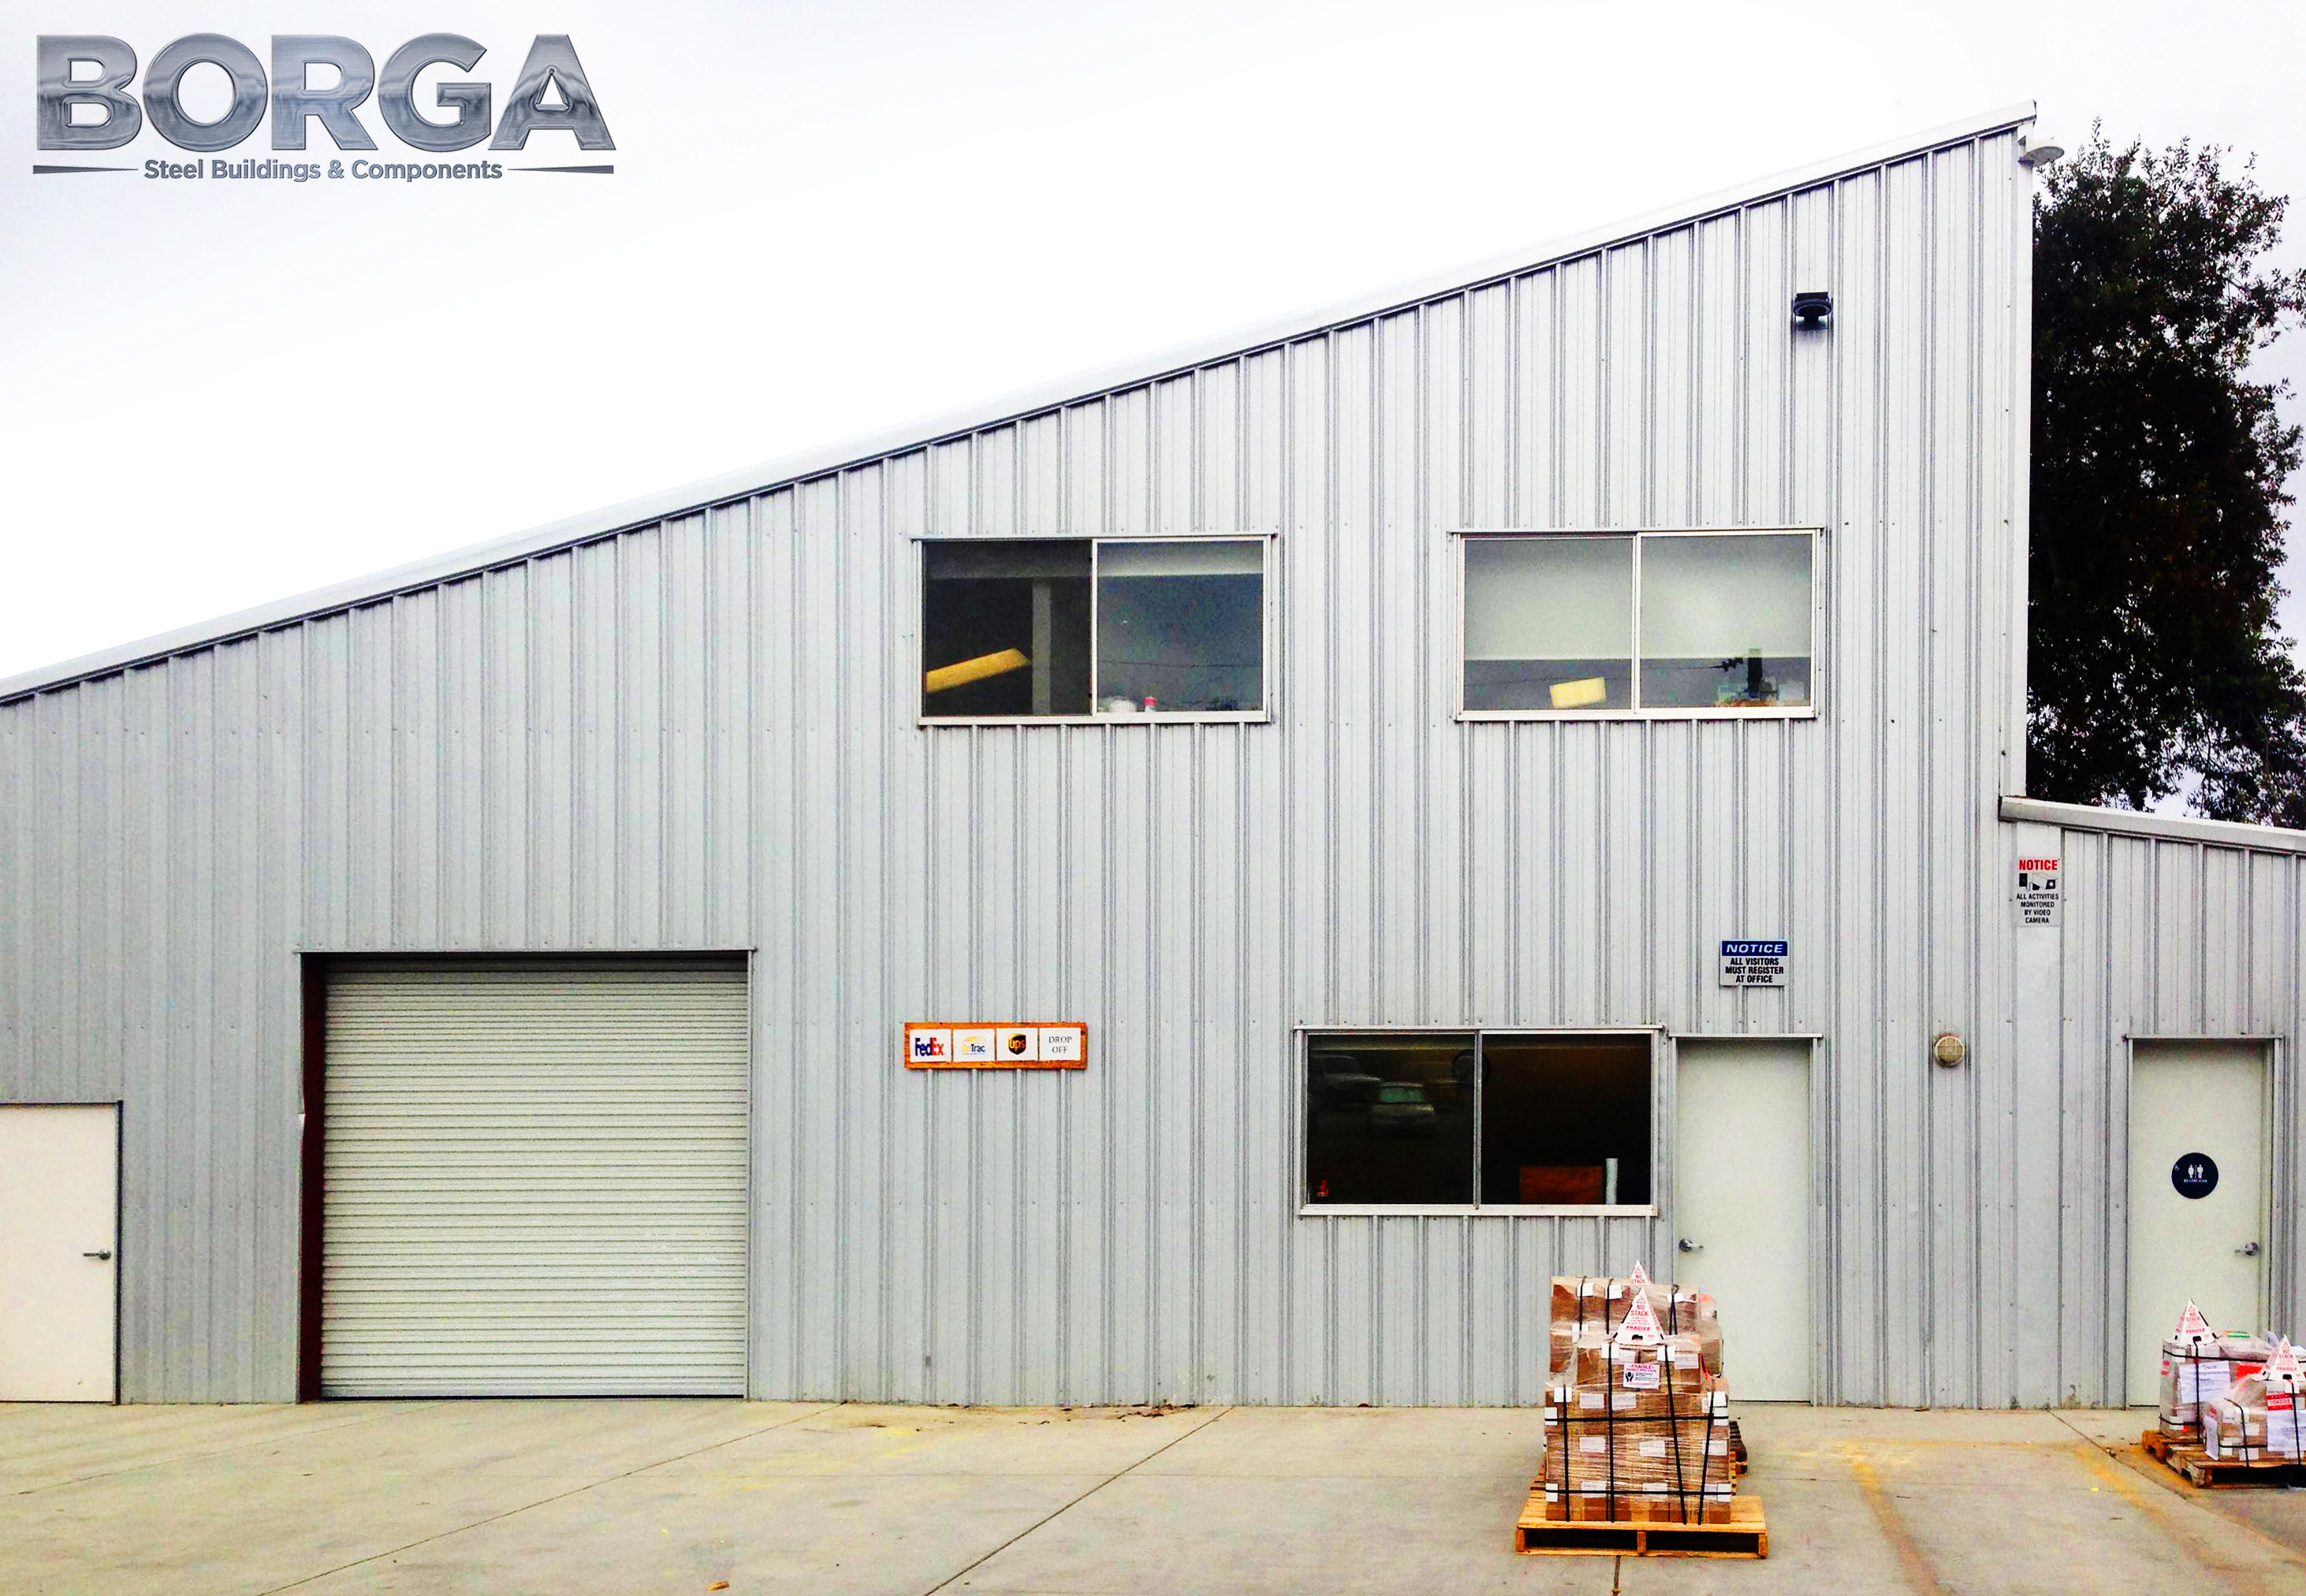 borga steel buildings and components fresno ca sheeting metal fireclay tile aromas ca 3